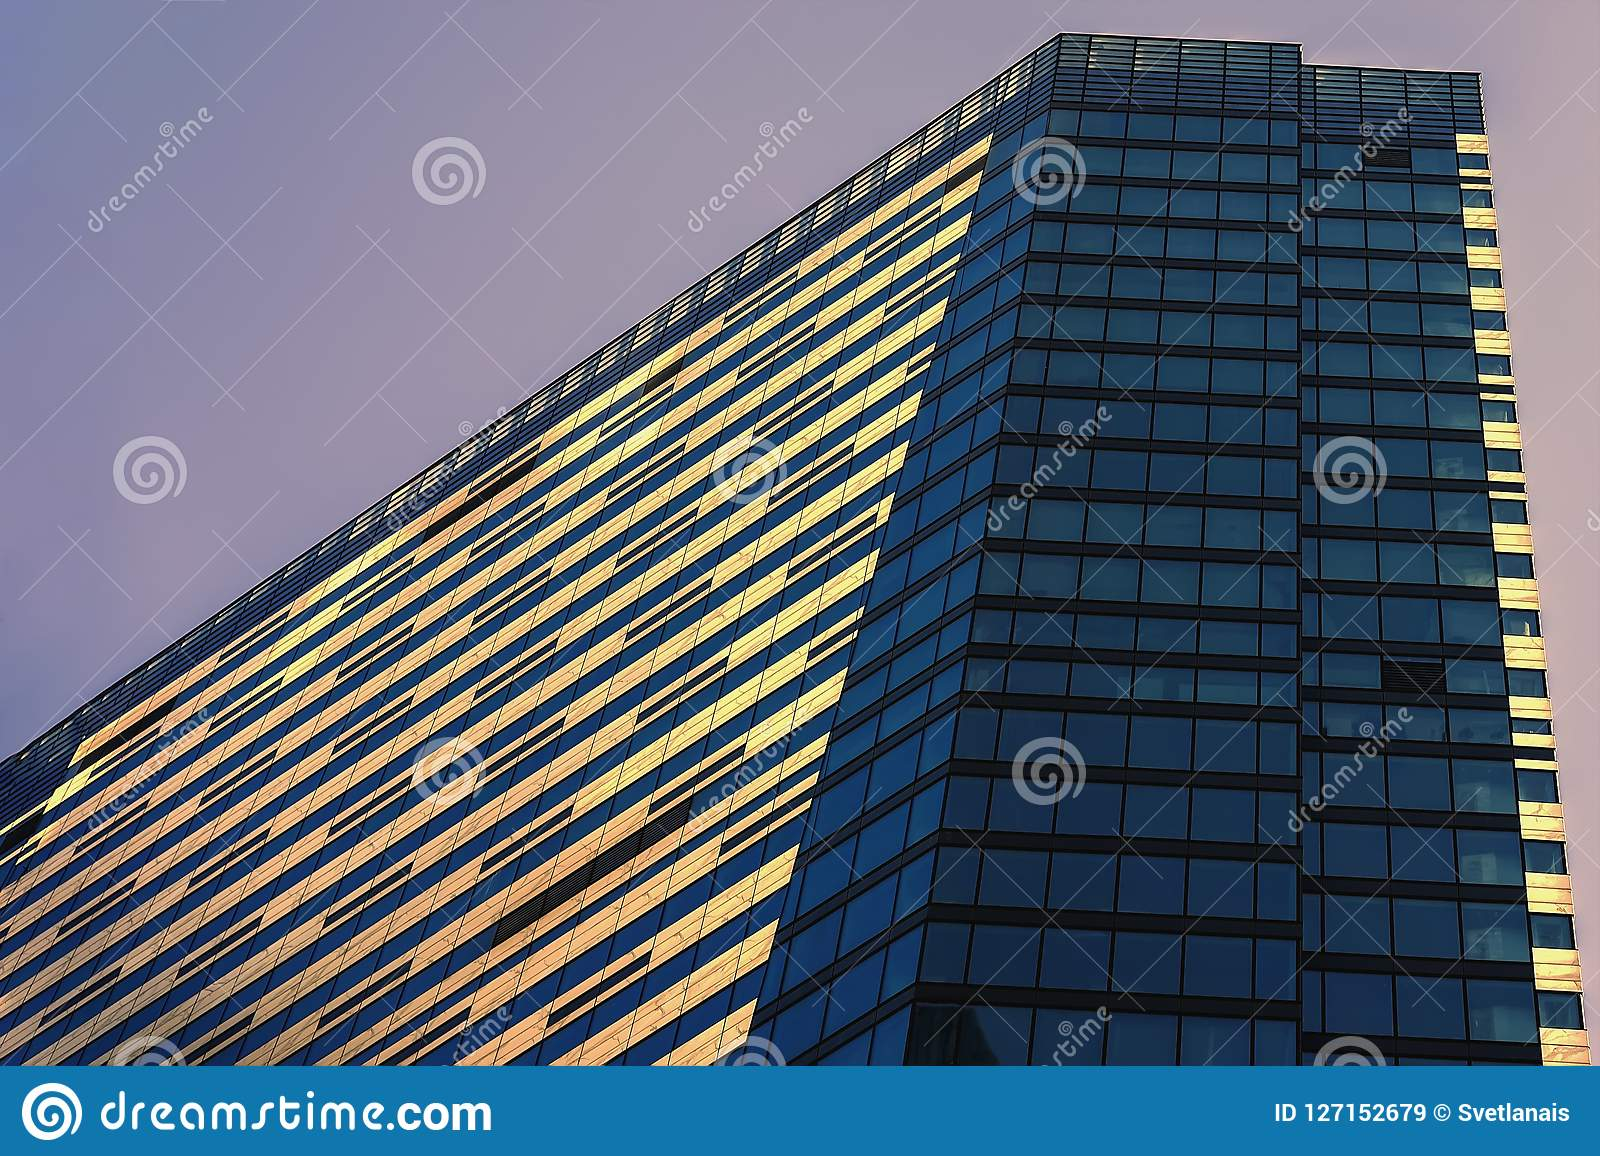 Modern building from glass and concrete, business district, abstract background, geometric city abstract